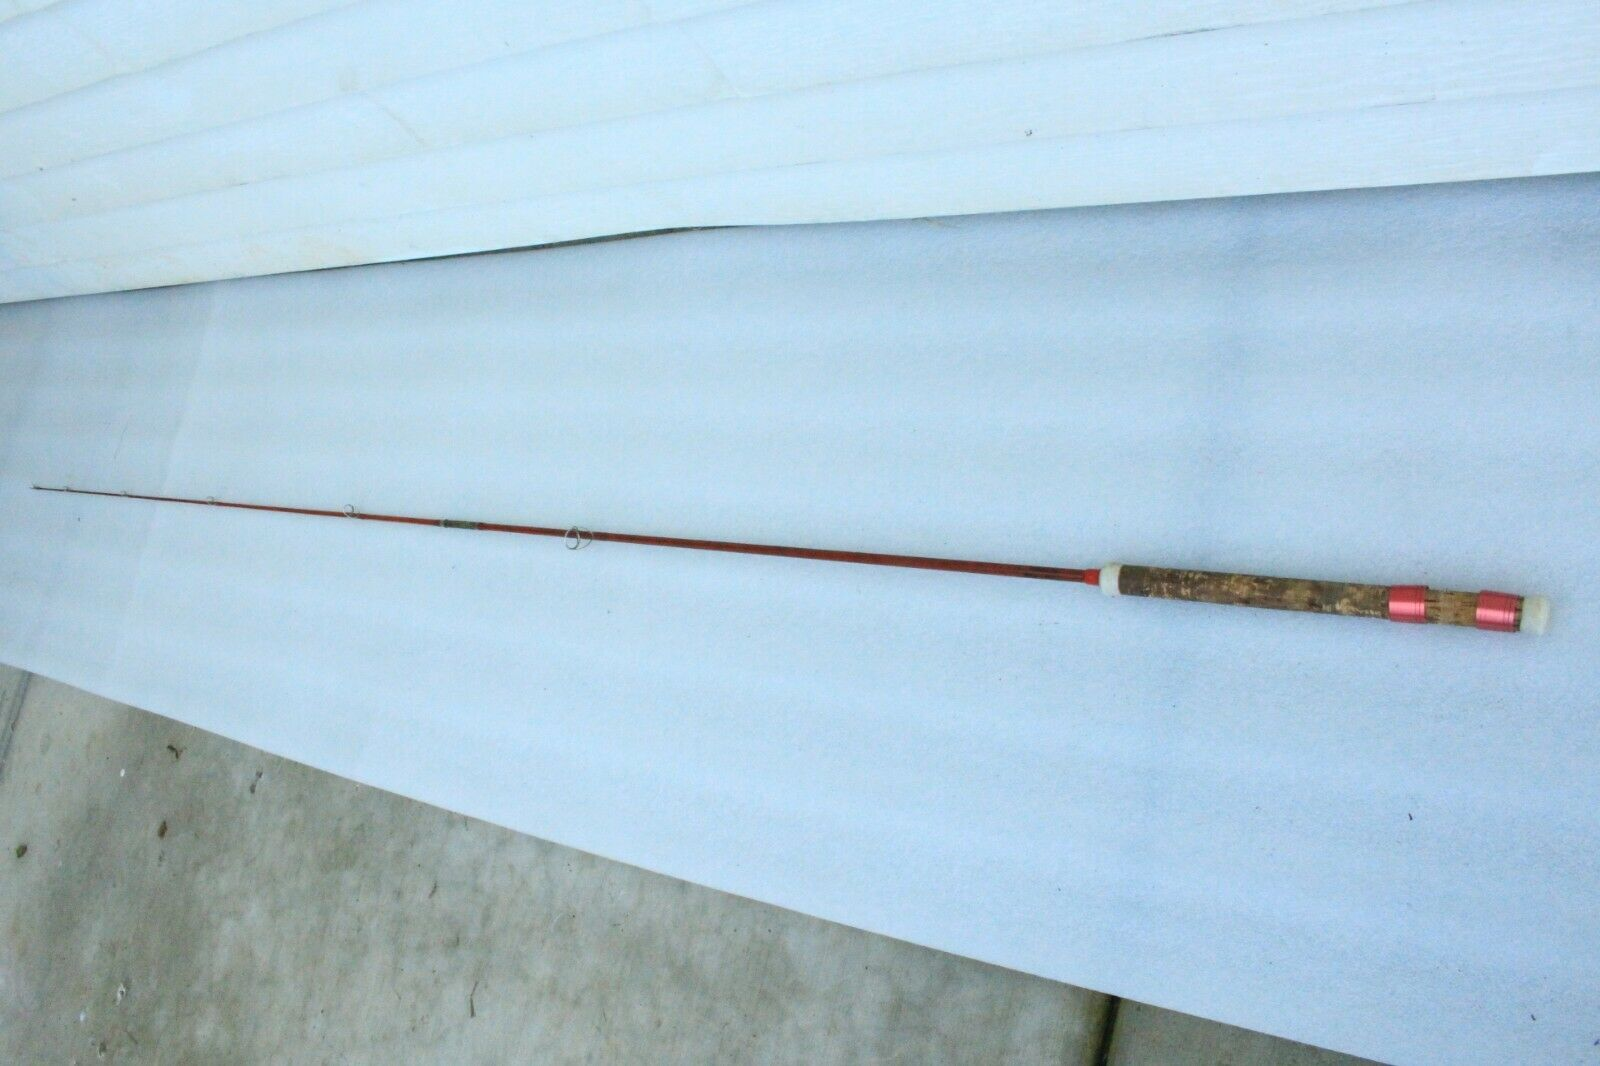 Powr-Kast by Phillipson T70 Lures to 1 2 Oz 7'  Fly Fishing Pole Vintage Rod Rare  the best after-sale service